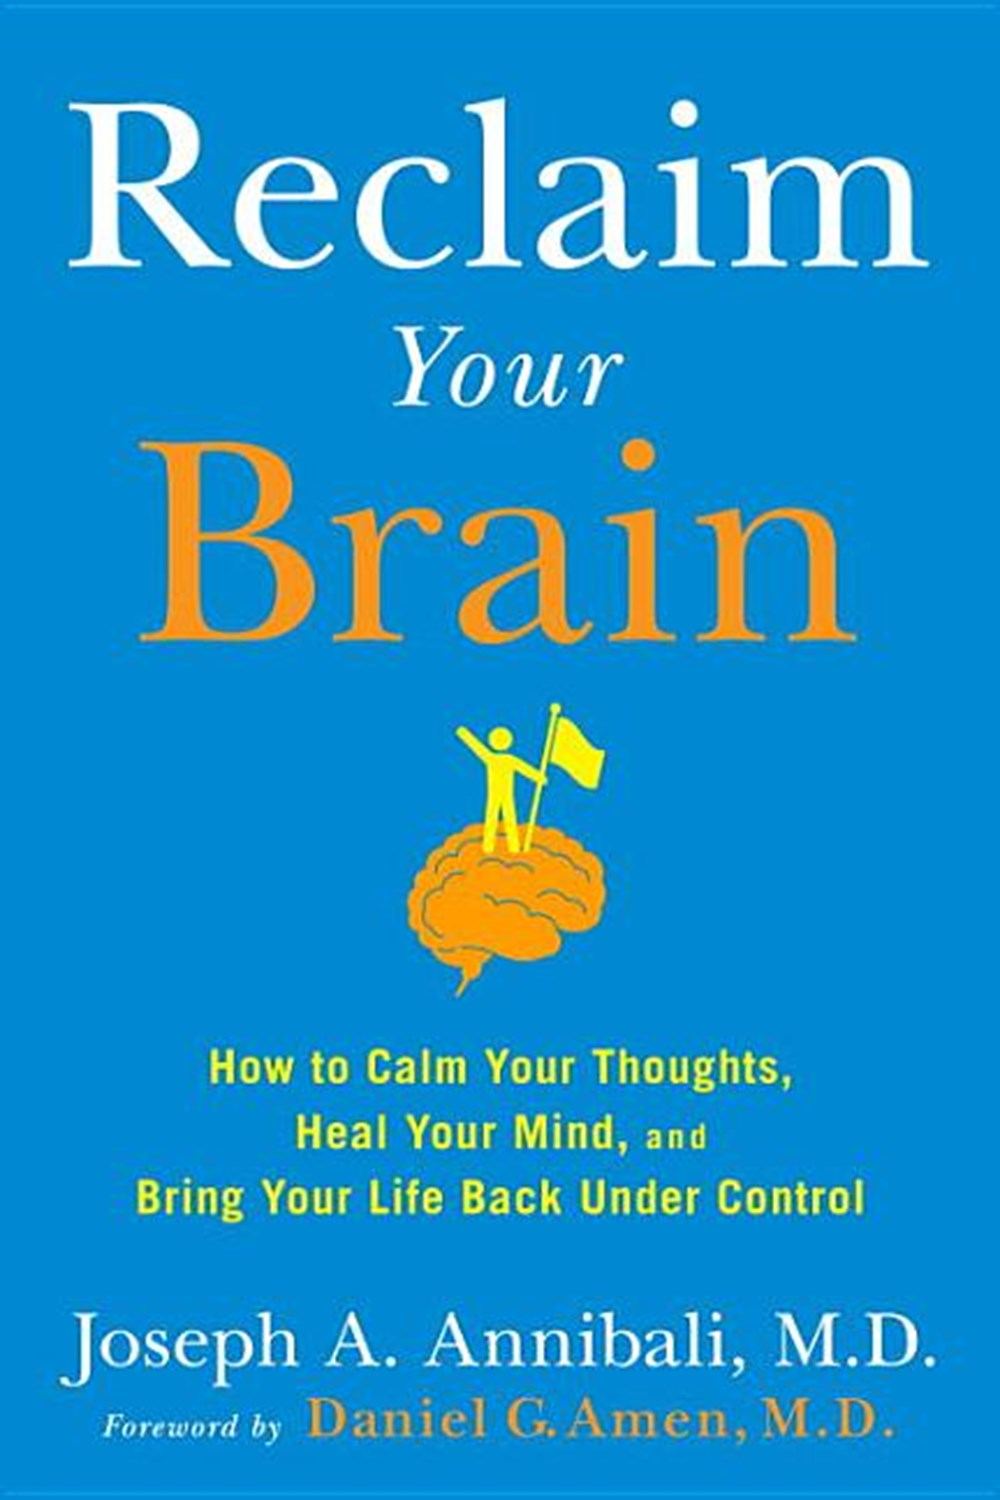 Reclaim Your Brain: How to Calm Your Thoughts, Heal Your Mind, and Bring Your Life Back Under Contro